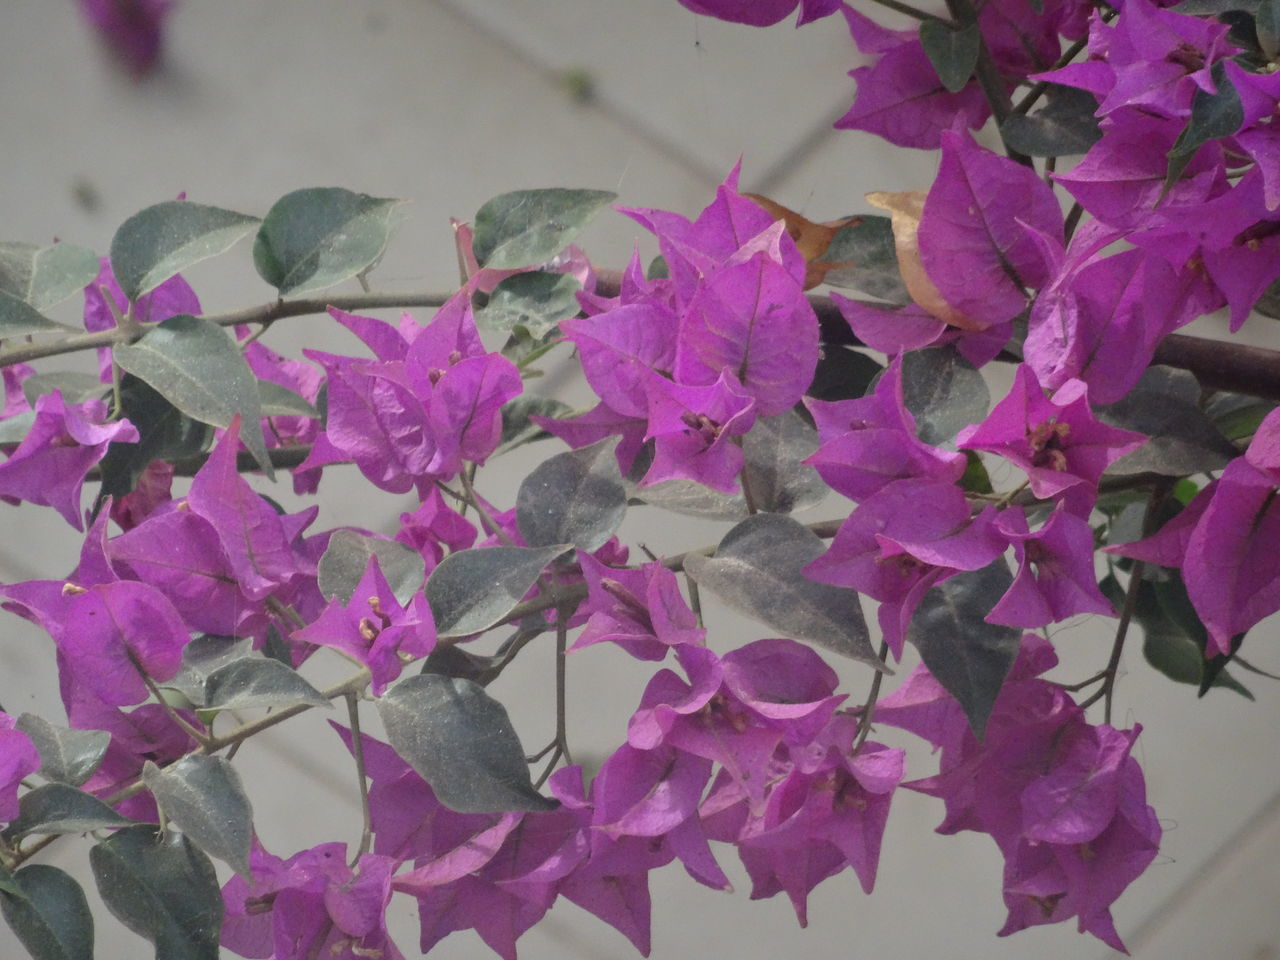 flower, growth, plant, fragility, leaf, beauty in nature, petal, nature, purple, no people, bougainvillea, freshness, pink color, close-up, outdoors, day, blooming, flower head